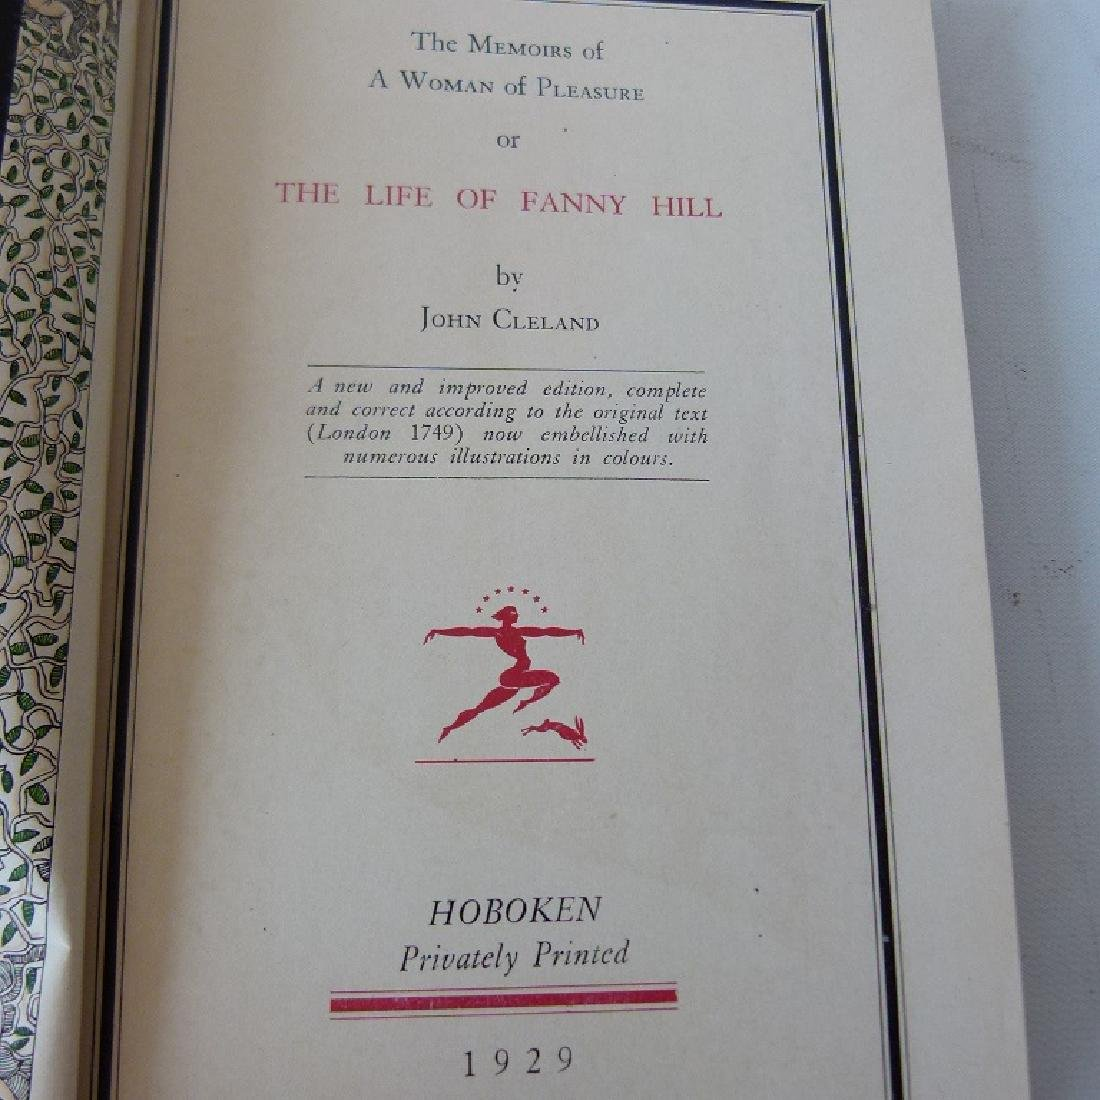 VOL. THE LIFE OF FANNY HILL BY JOHN CLELAND - 3